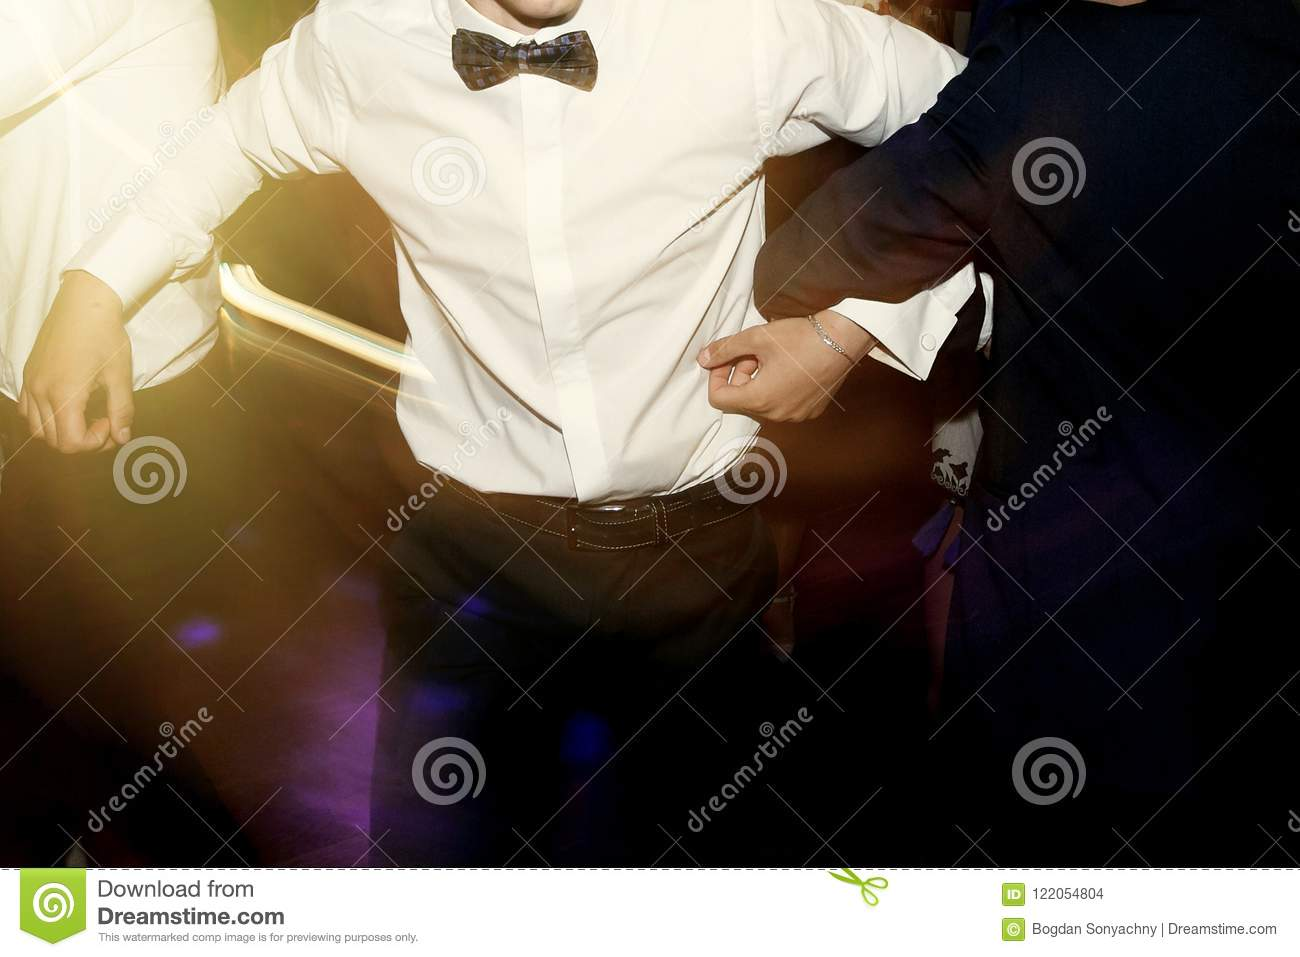 stylish men having fun and dancing at party in restaurant, reception at luxury wedding, rich graduation at school or university